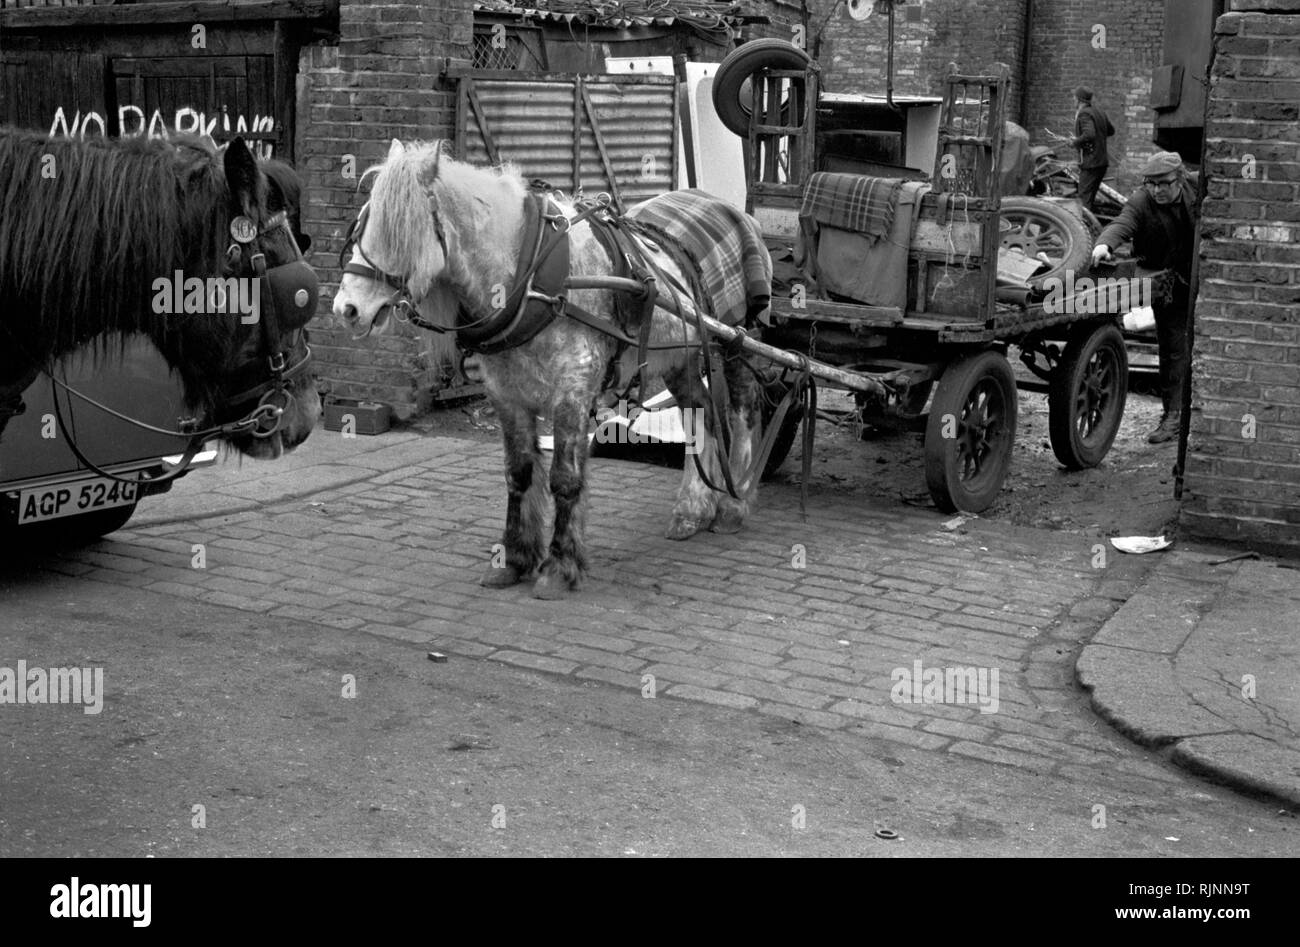 Rag and Bone men at the totters yard, unloading stuff collected during the day. Their horses were usually stabled at the yard. His horse and cart. Notting Hill area of West London 1970. Collecting scrap for recycling re-cycling 1970s UK. HOMER SYKES Stock Photo